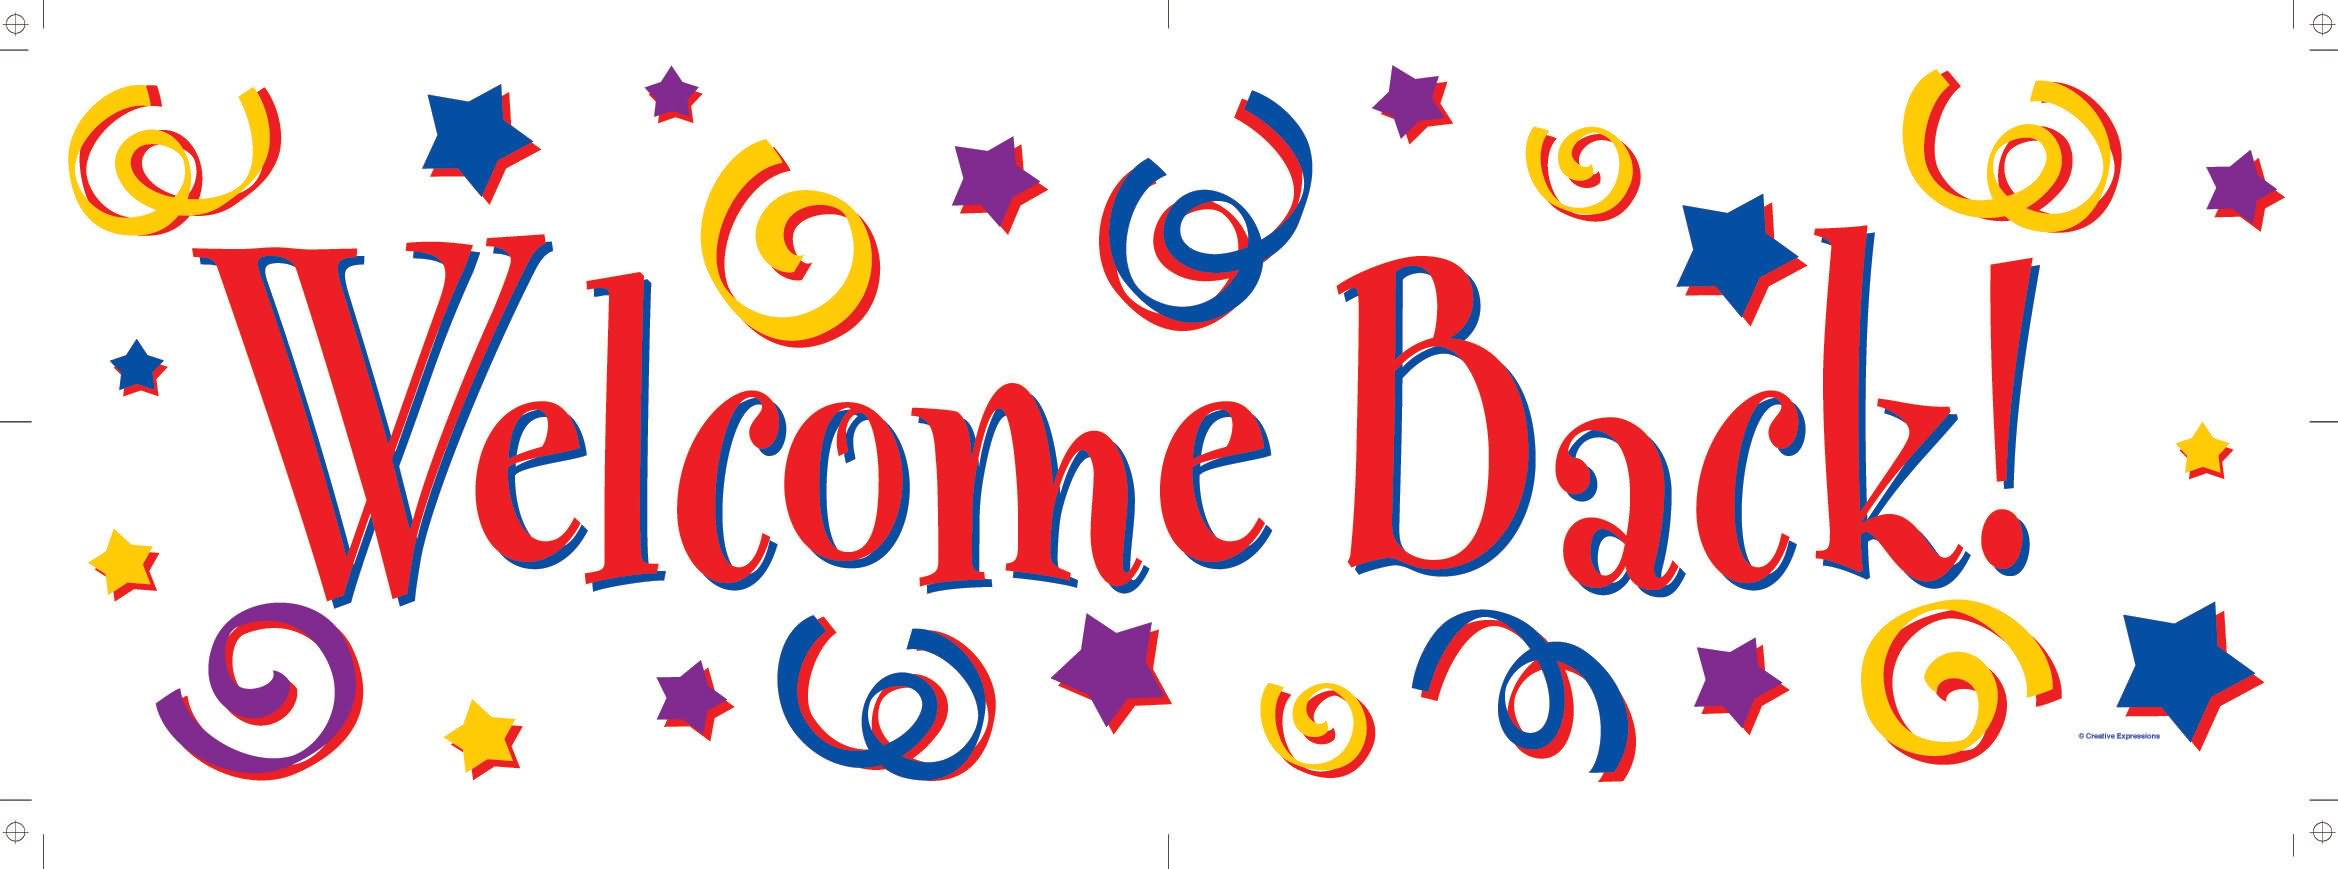 Welcome To Our Church Clipart 2-Welcome to our church clipart 2-13